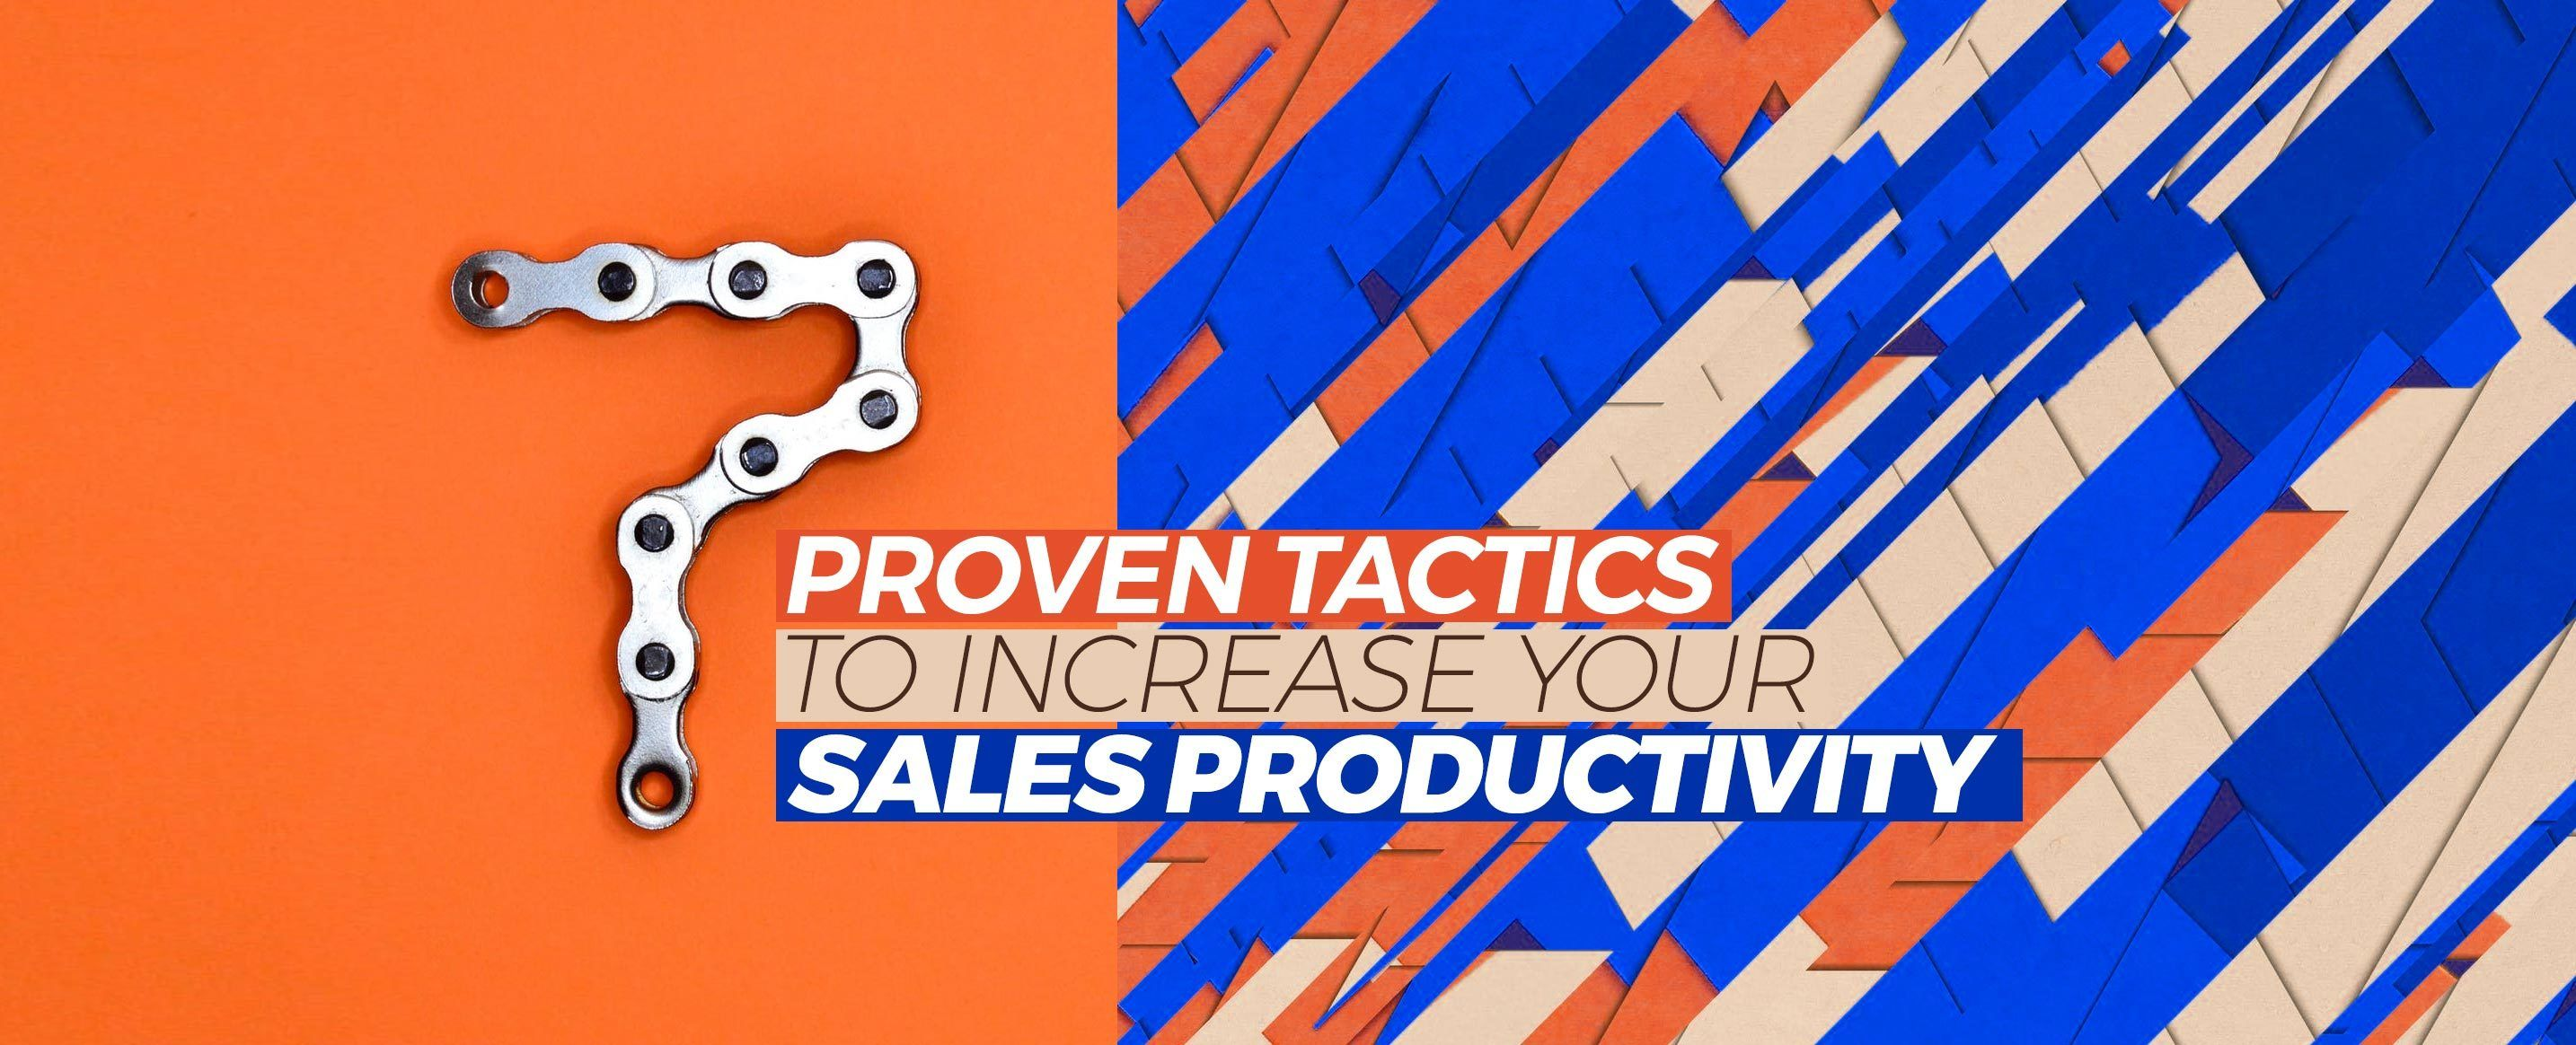 7-Proven-Tactics-To-Increase-Your-Sales-Productivity